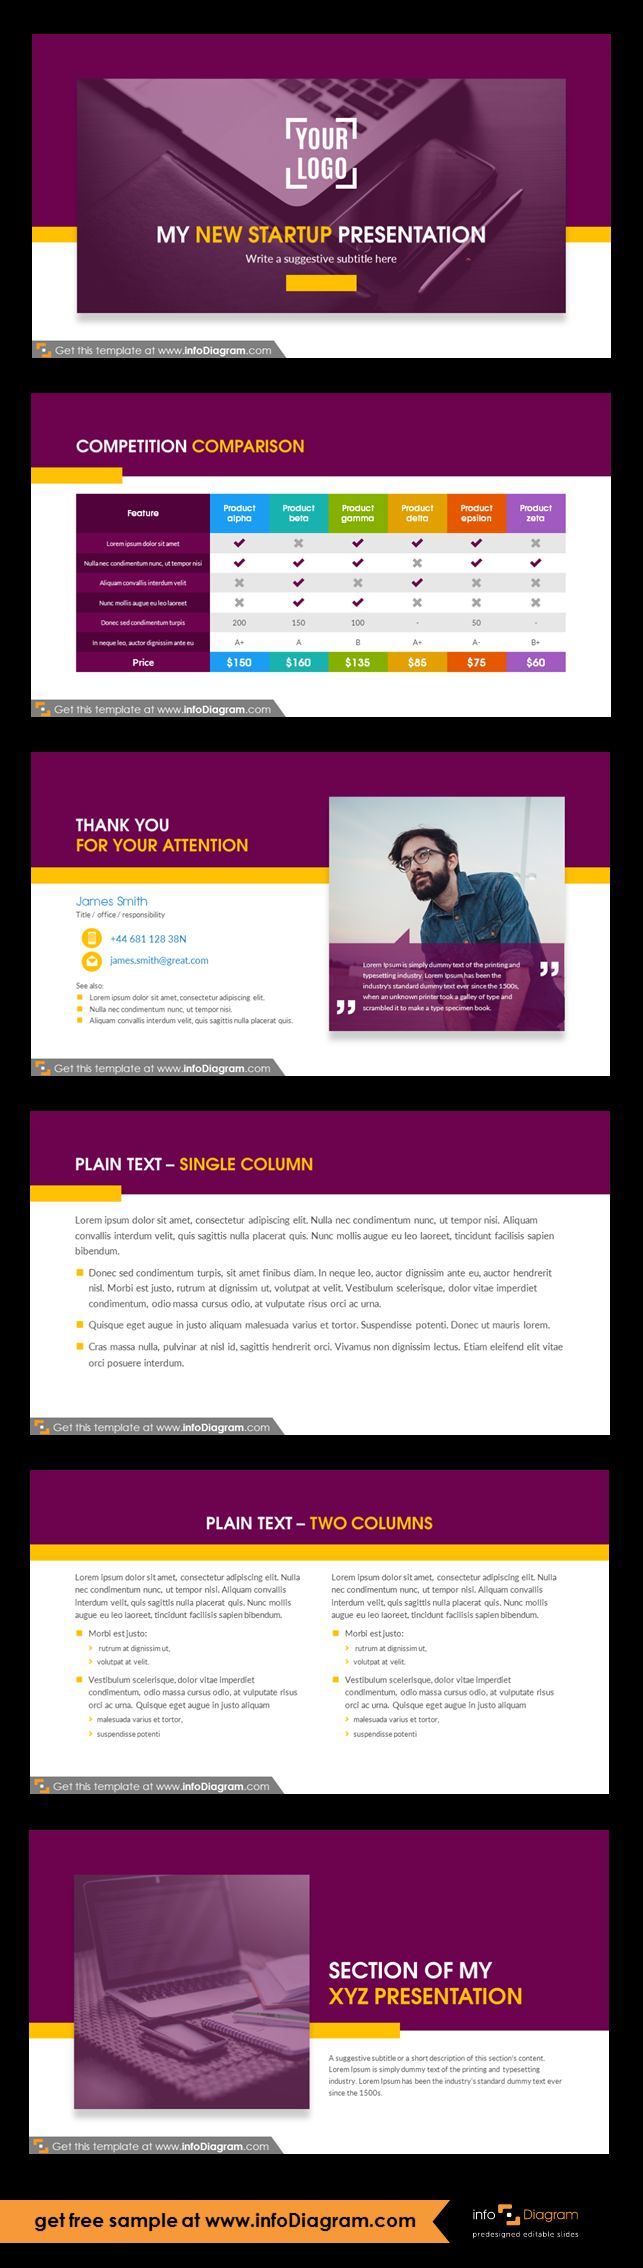 New startup company presentation template and slide deck with several layouts. Predesigned infographics shapes and slide content. Ideal for new business idea presentation or pitch deck for investors. Competition comparison table. Plain text: single and double column Closing slide - thank you for your attention. Fully editable style, size and colors. Create a powerful business presentation. Present your start-up overview.